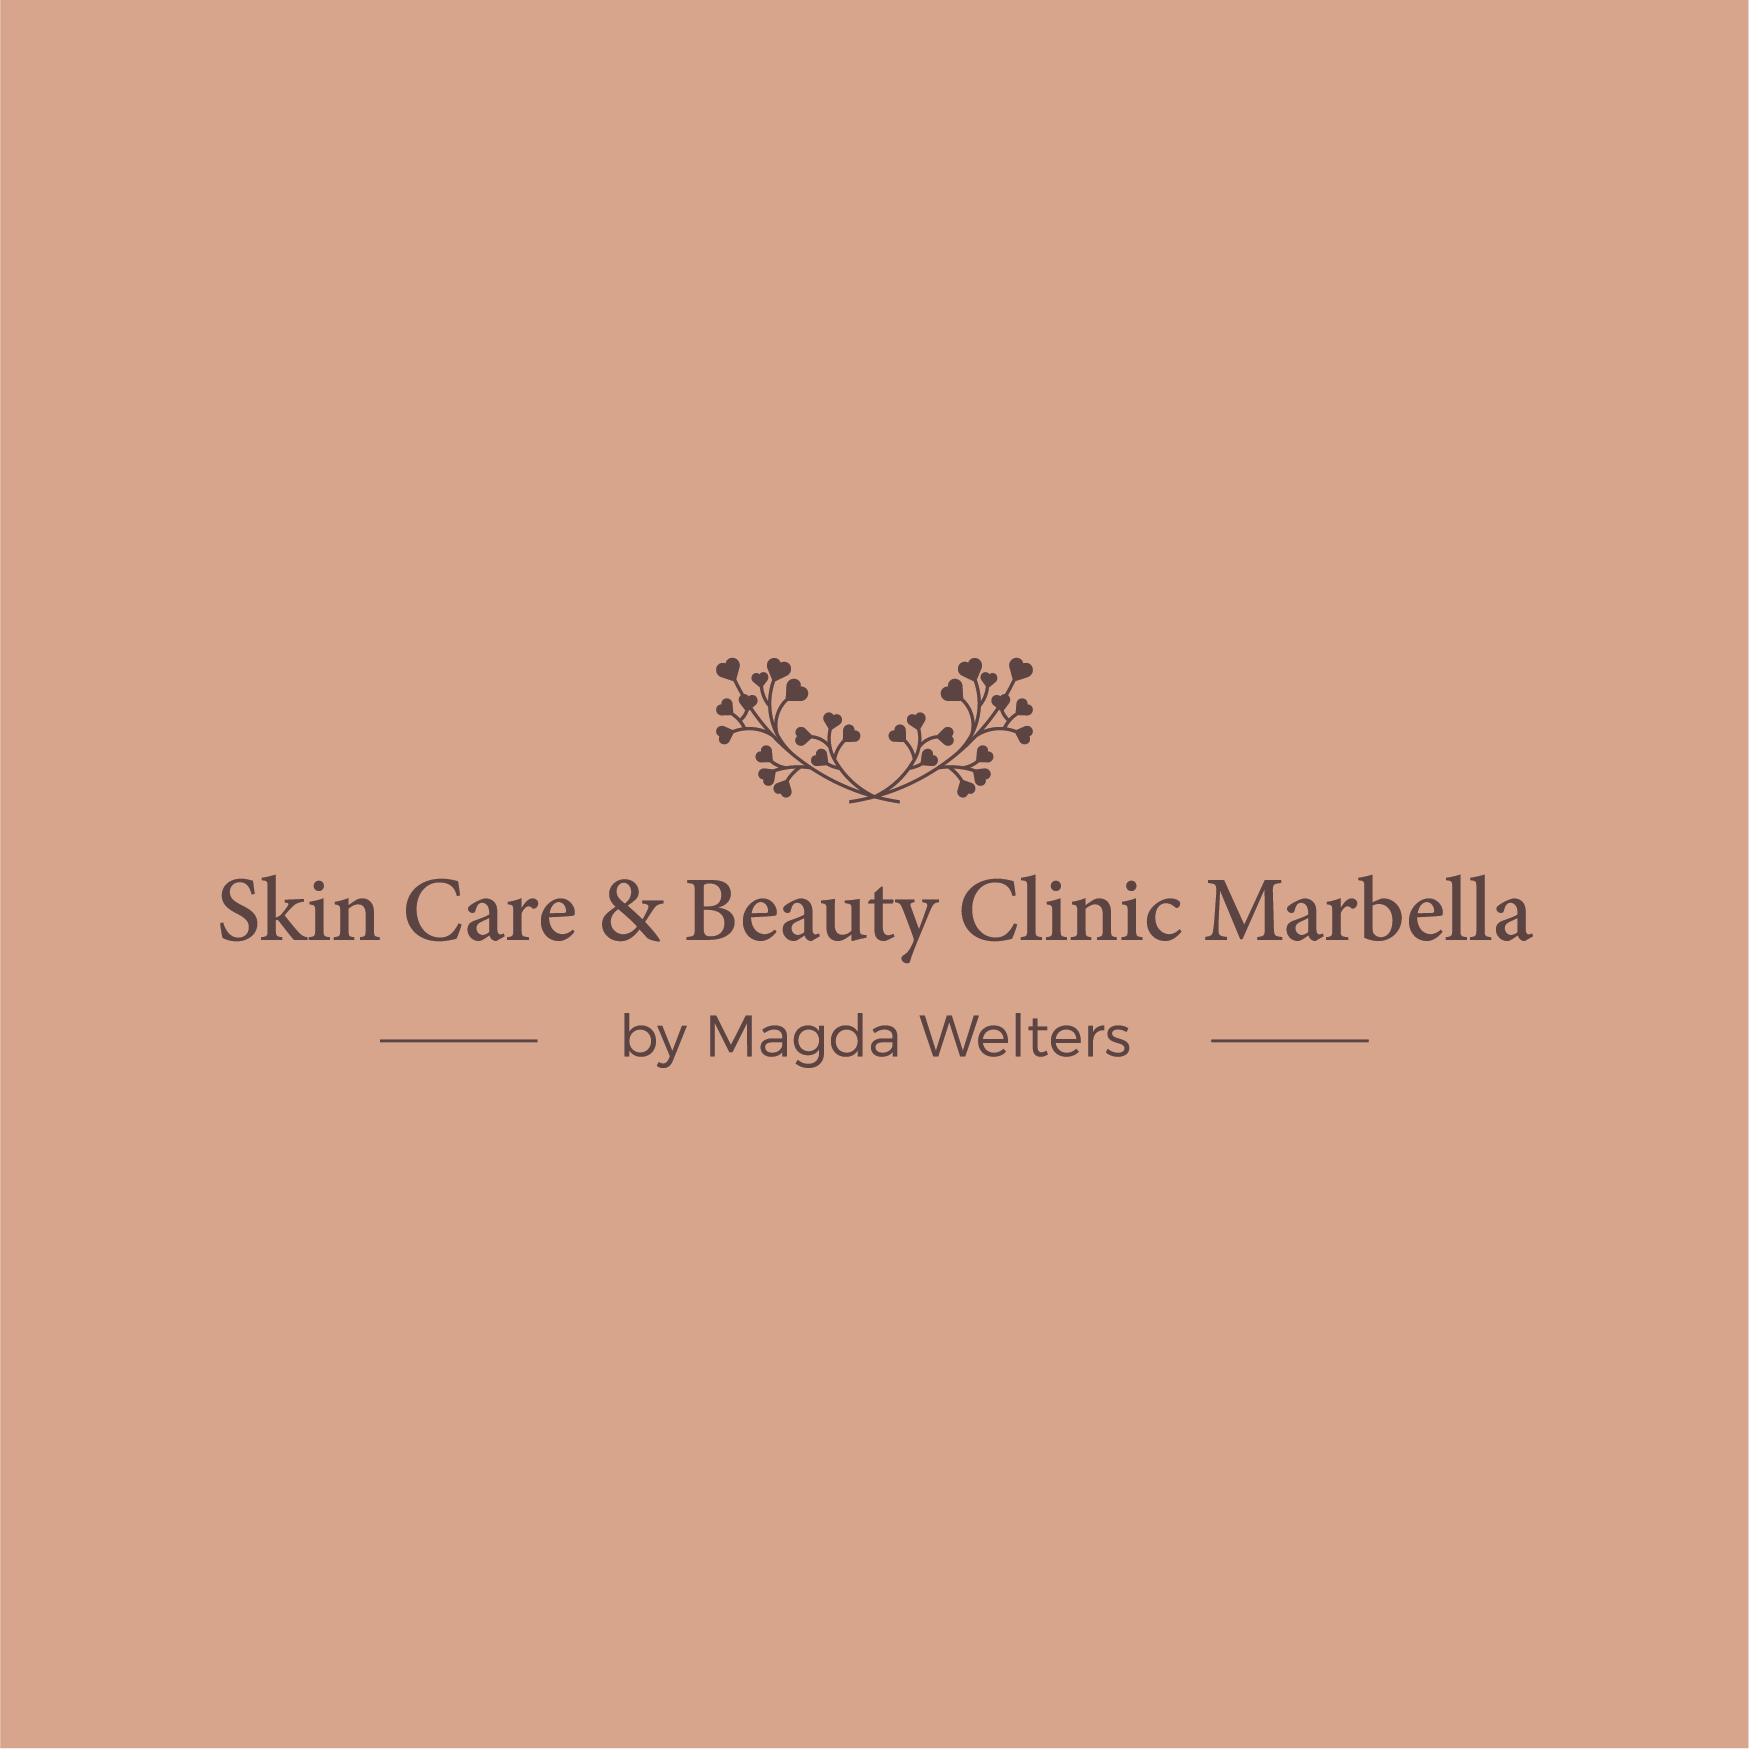 Skin Care & Beauty Clinic Marbella by Magda Welters